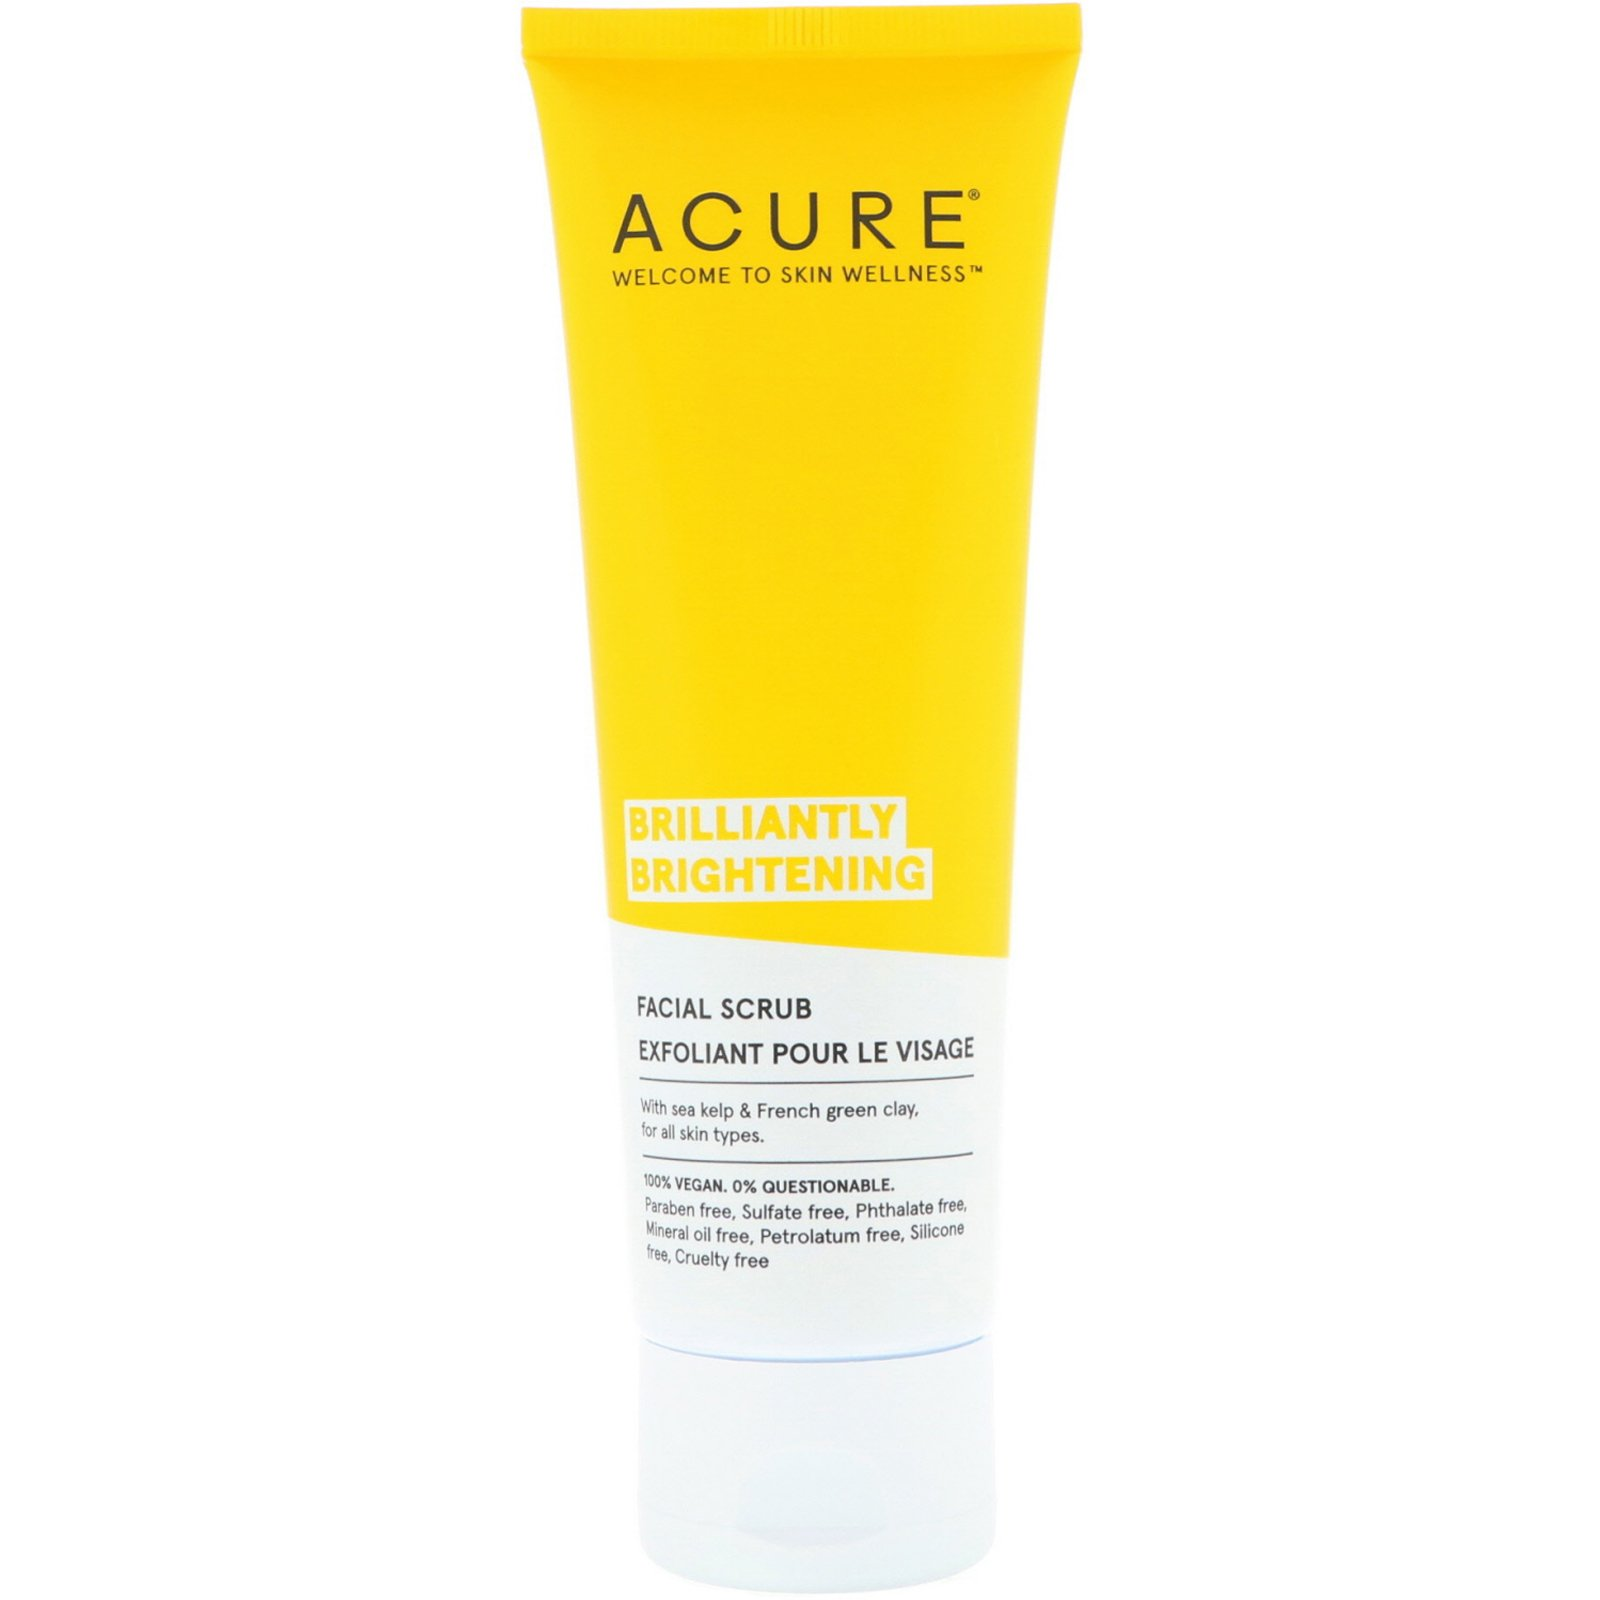 Acure, Brilliantly Brightening, Facial Scrub, 4 Fl Oz (118